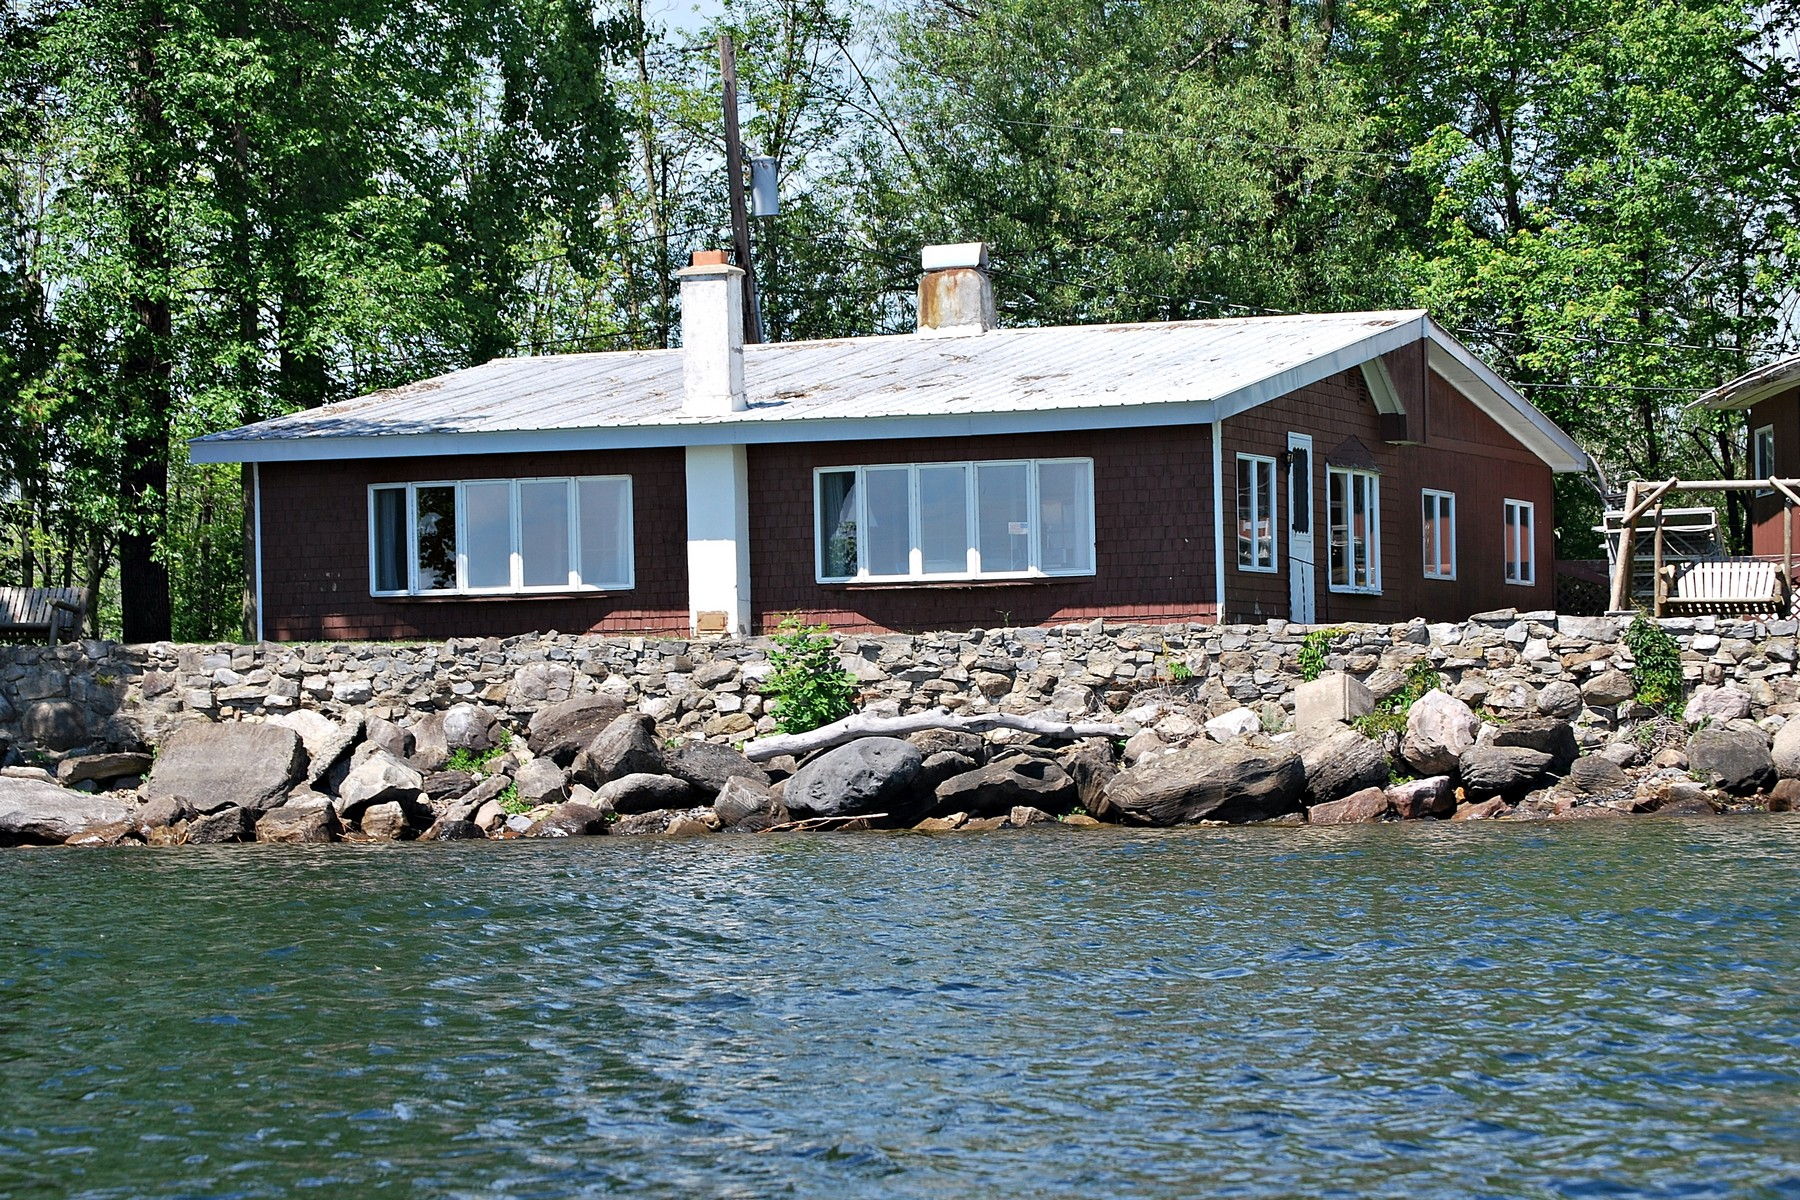 Single Family Home for Sale at Lake Champlain Cottages 111 Stony Point Road Champlain, New York 12919 United States